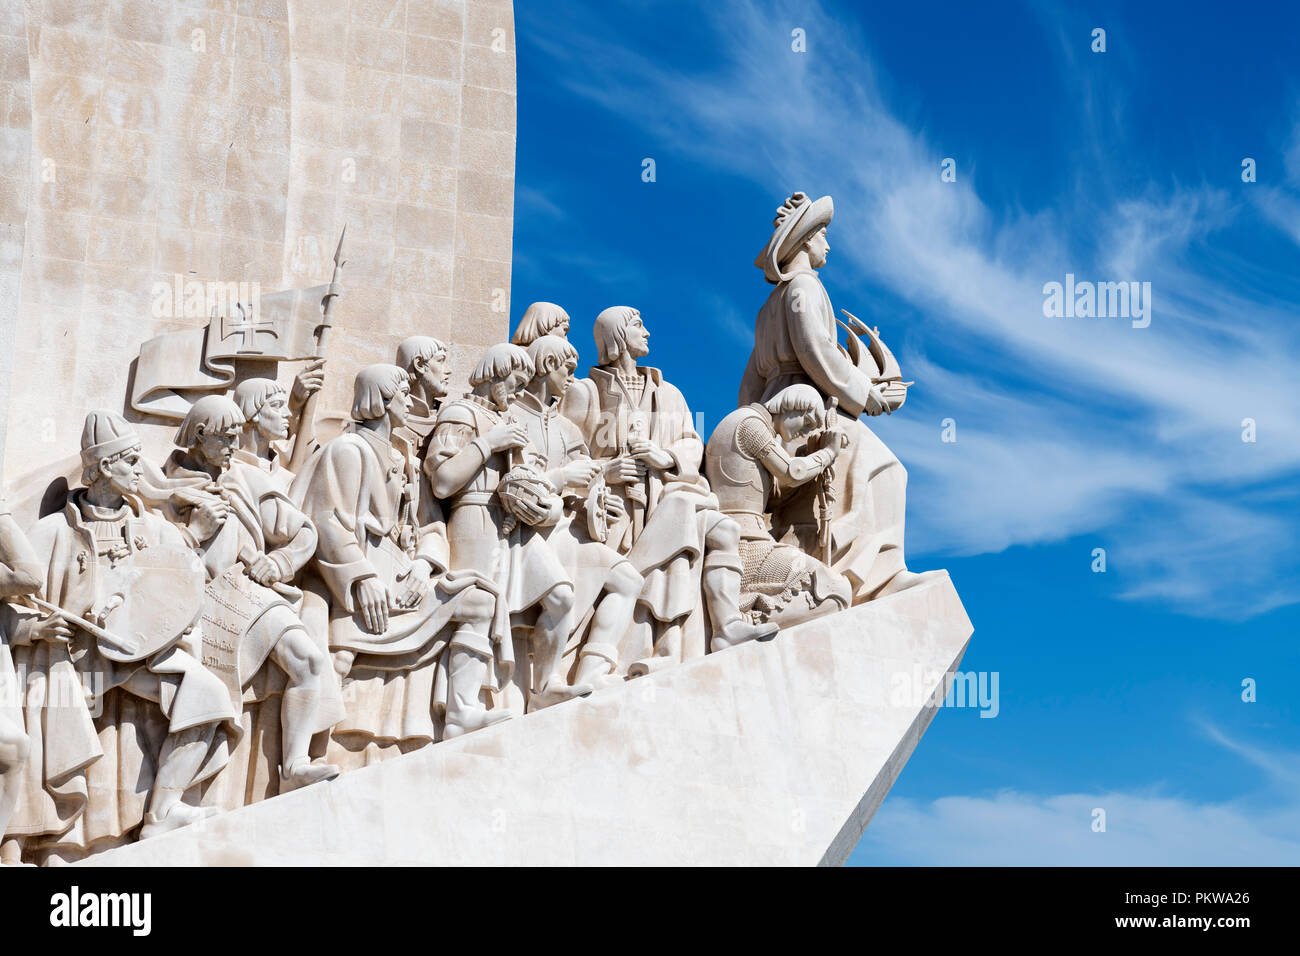 Detail of the Monument to the Discoveries ( Padrao dos Descobrimentos ), Belem district, Lisbon, Portugal - Stock Image